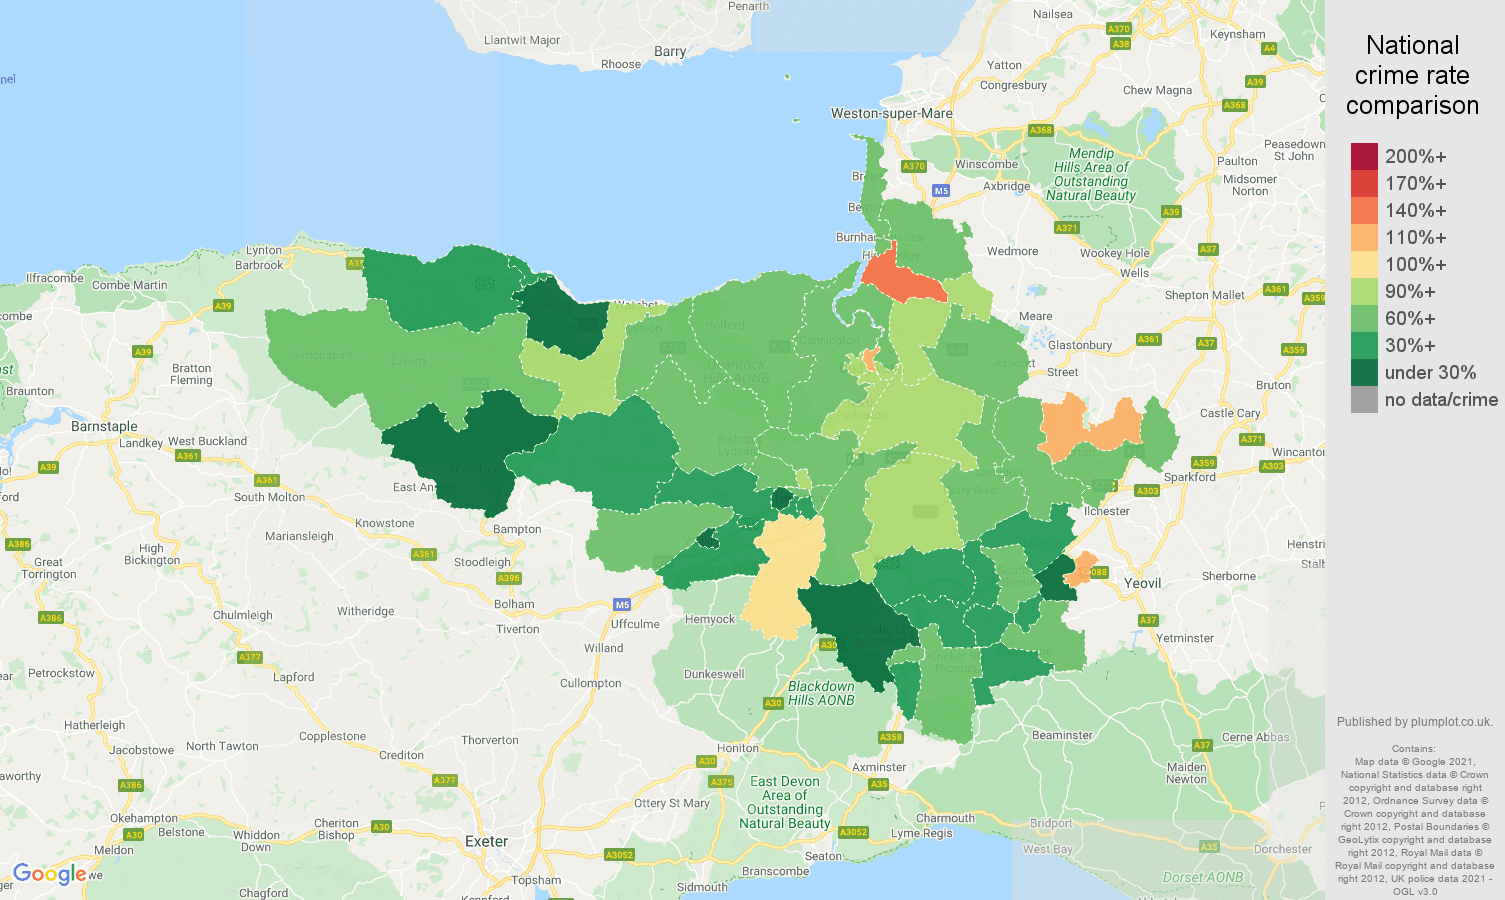 Taunton burglary crime rate comparison map